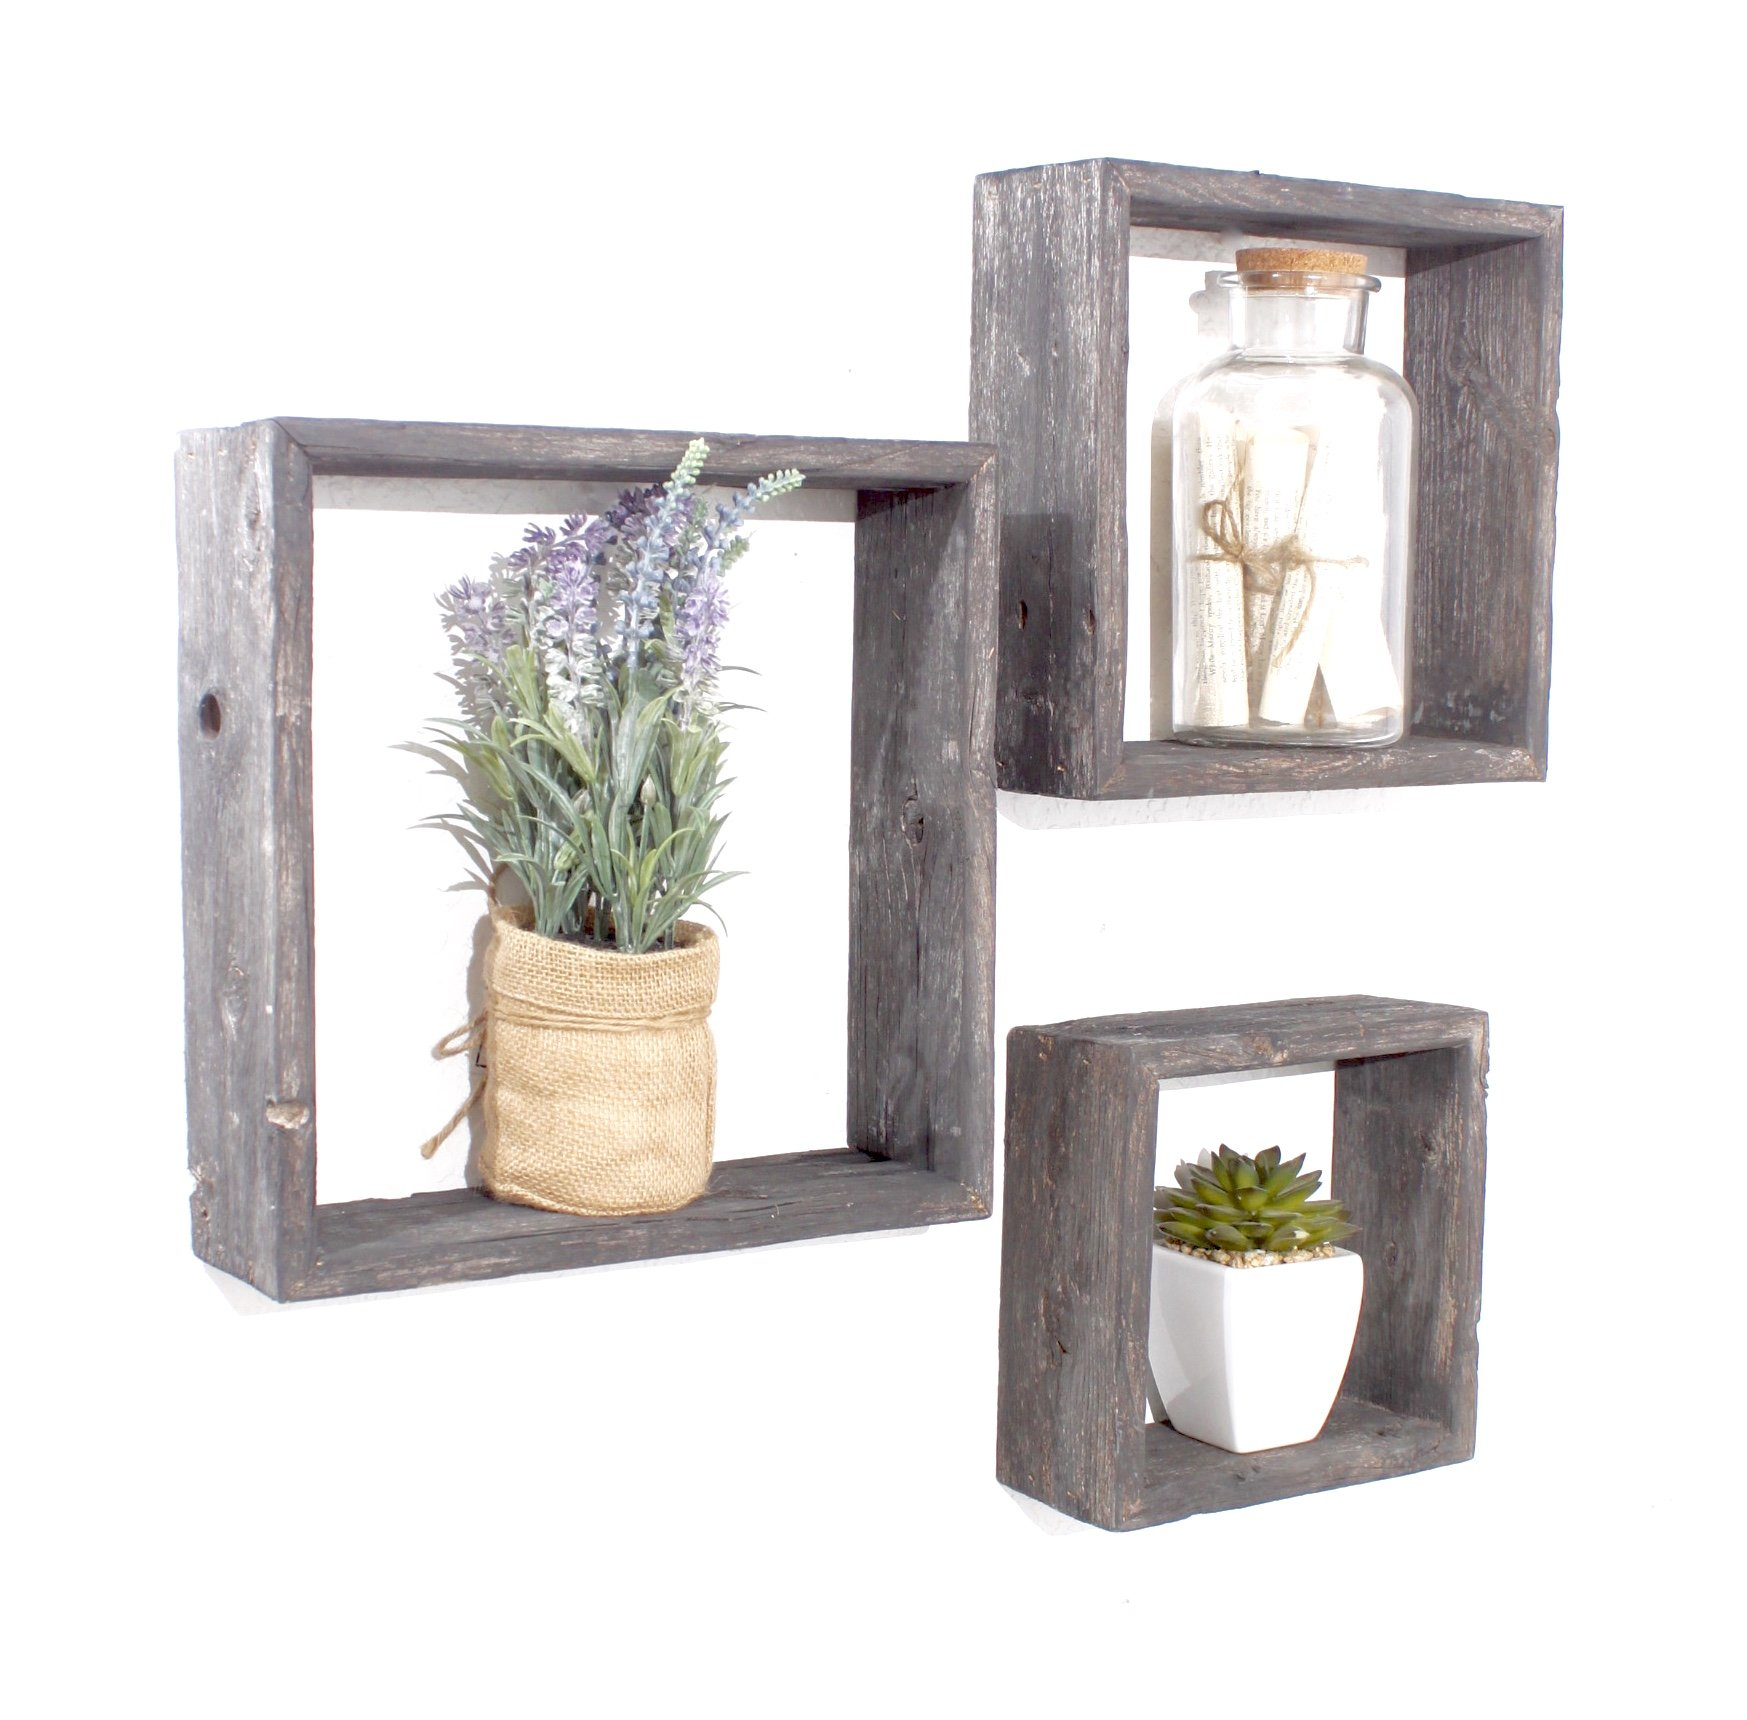 BarnwoodUSA Rustic Farmhouse Floating Hexagon Shelves | Made of 100% Reclaimed and Recycled Wood | Open Shadow Box Style To Display Pieces or Show Off By Themselves | Weathered Gray